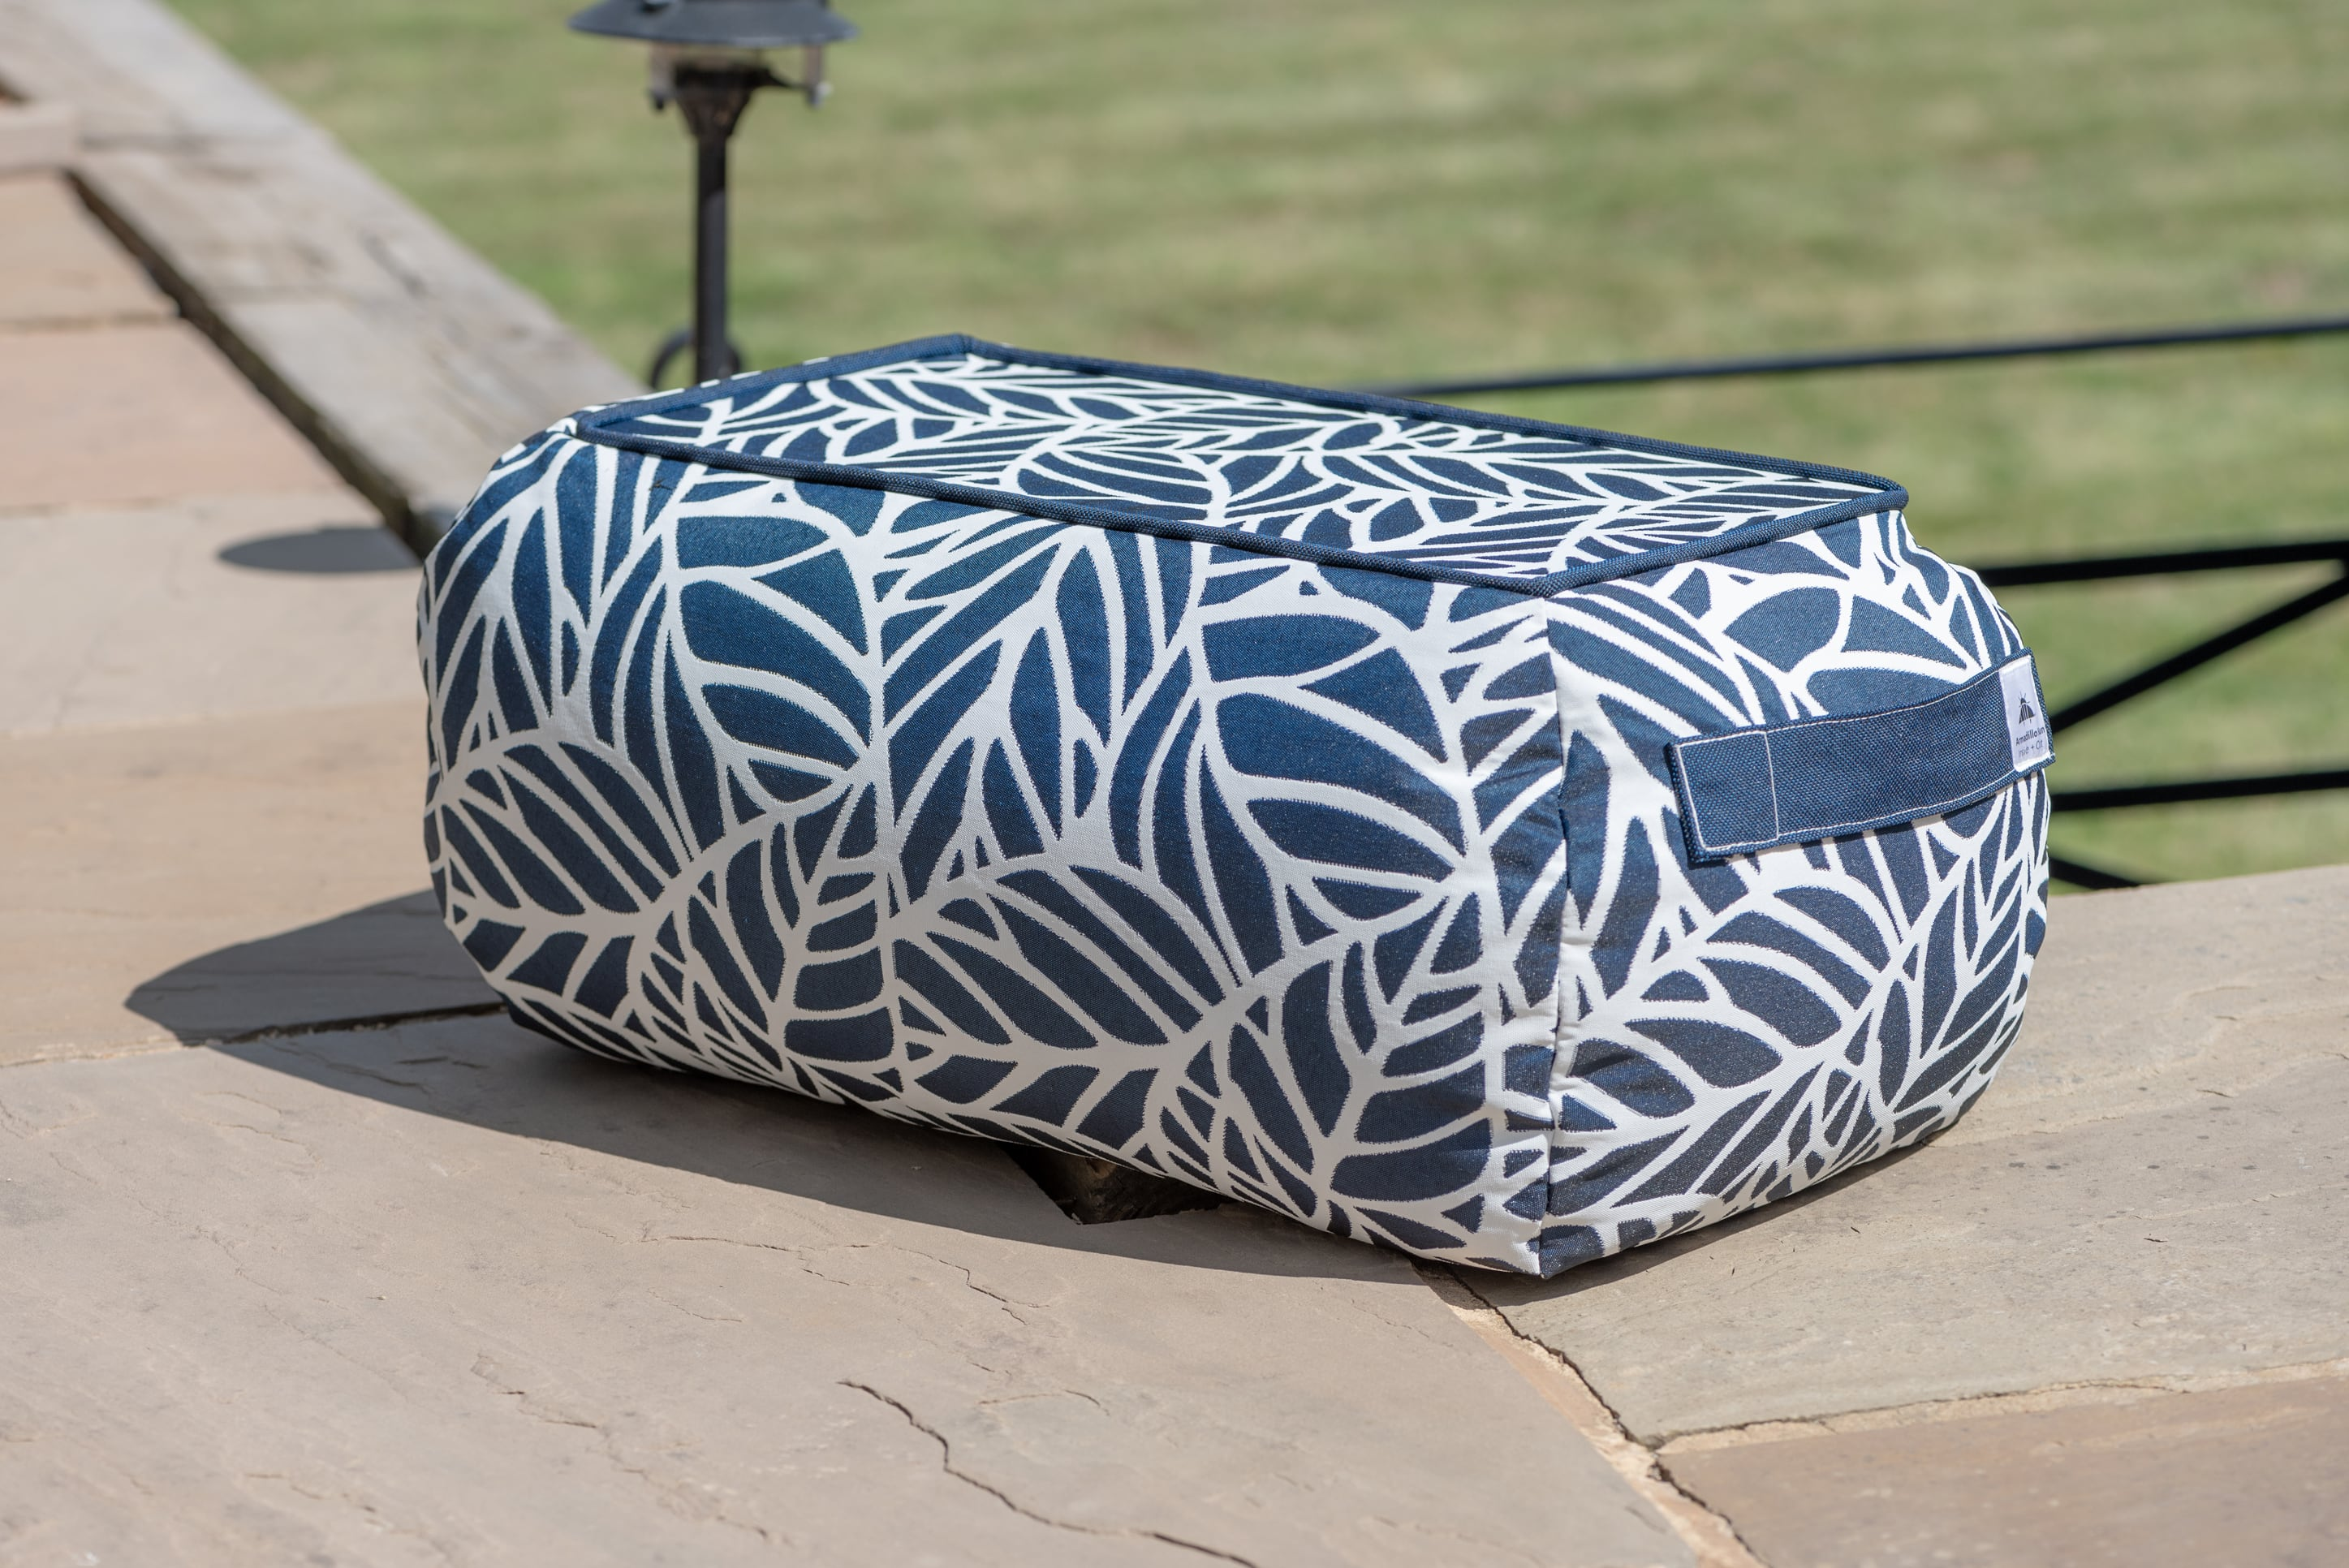 Armadillo Sun bean bag table in dark navy blue and white palm pattern